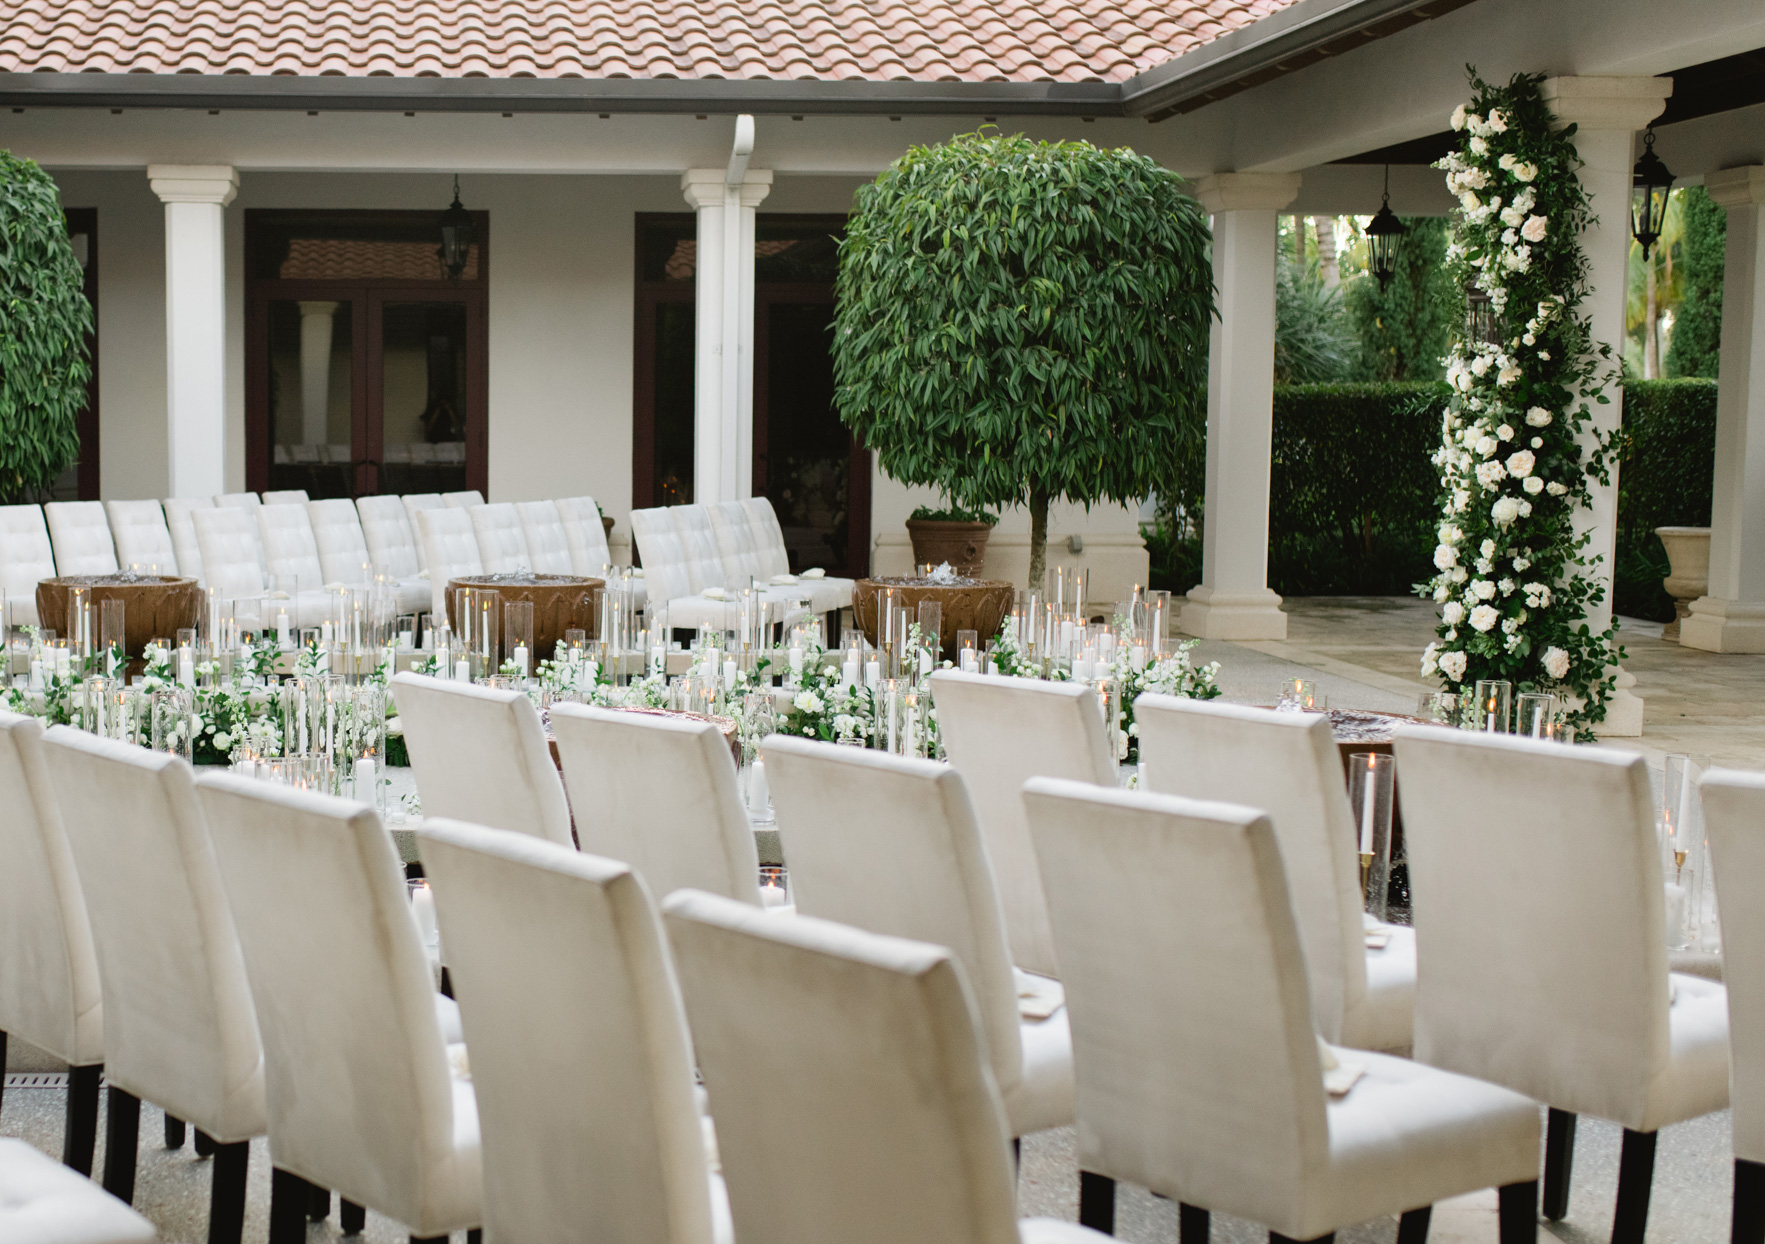 outdoor wedding ceremony with elegant white chairs, candles, and florals